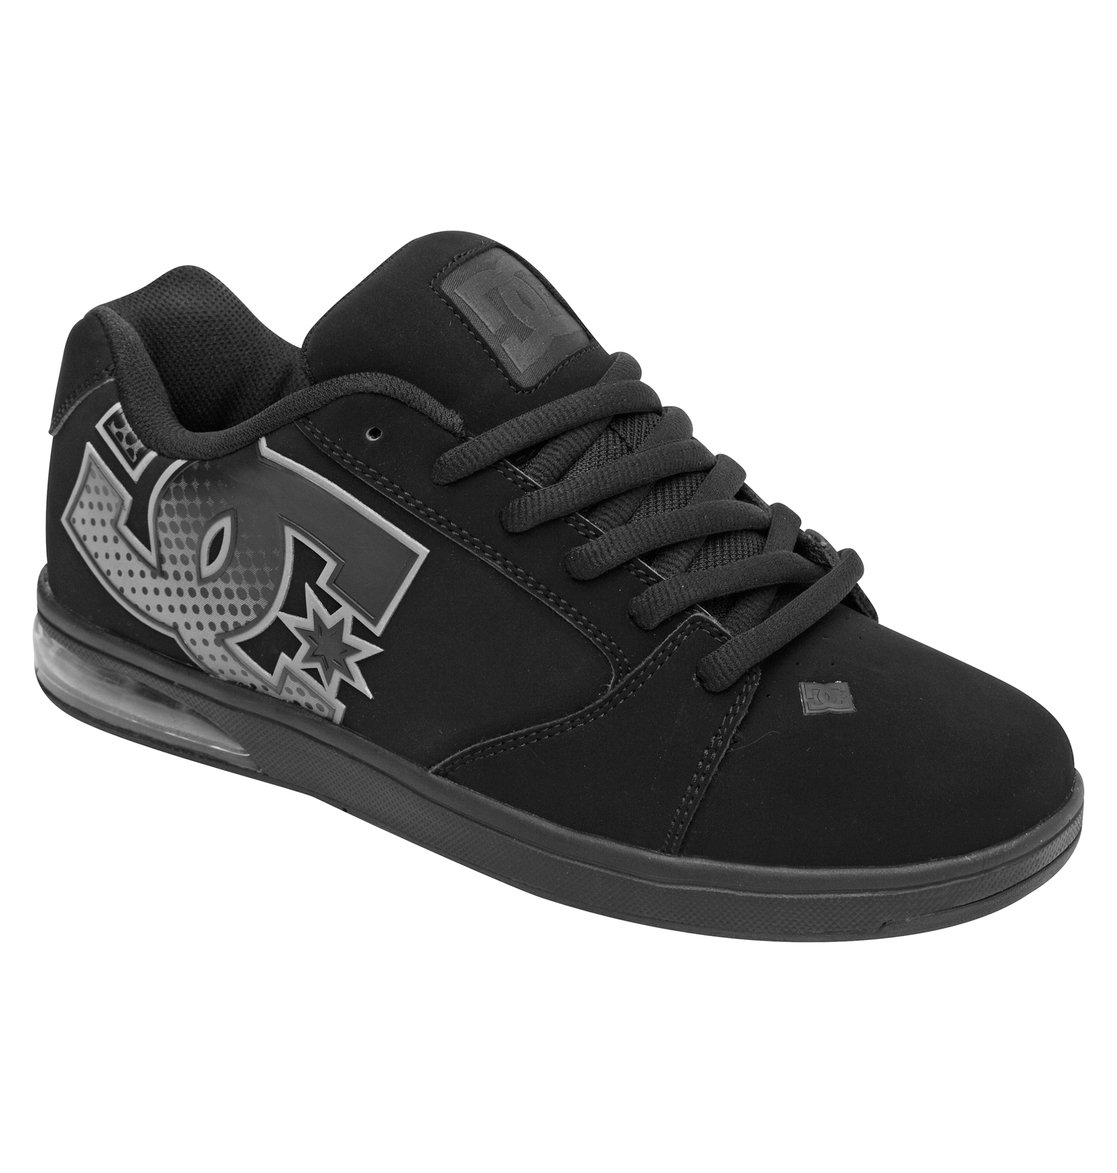 d641e8edc3f6 1 Men s Raif VIZ Shoes ADYS200009 DC Shoes